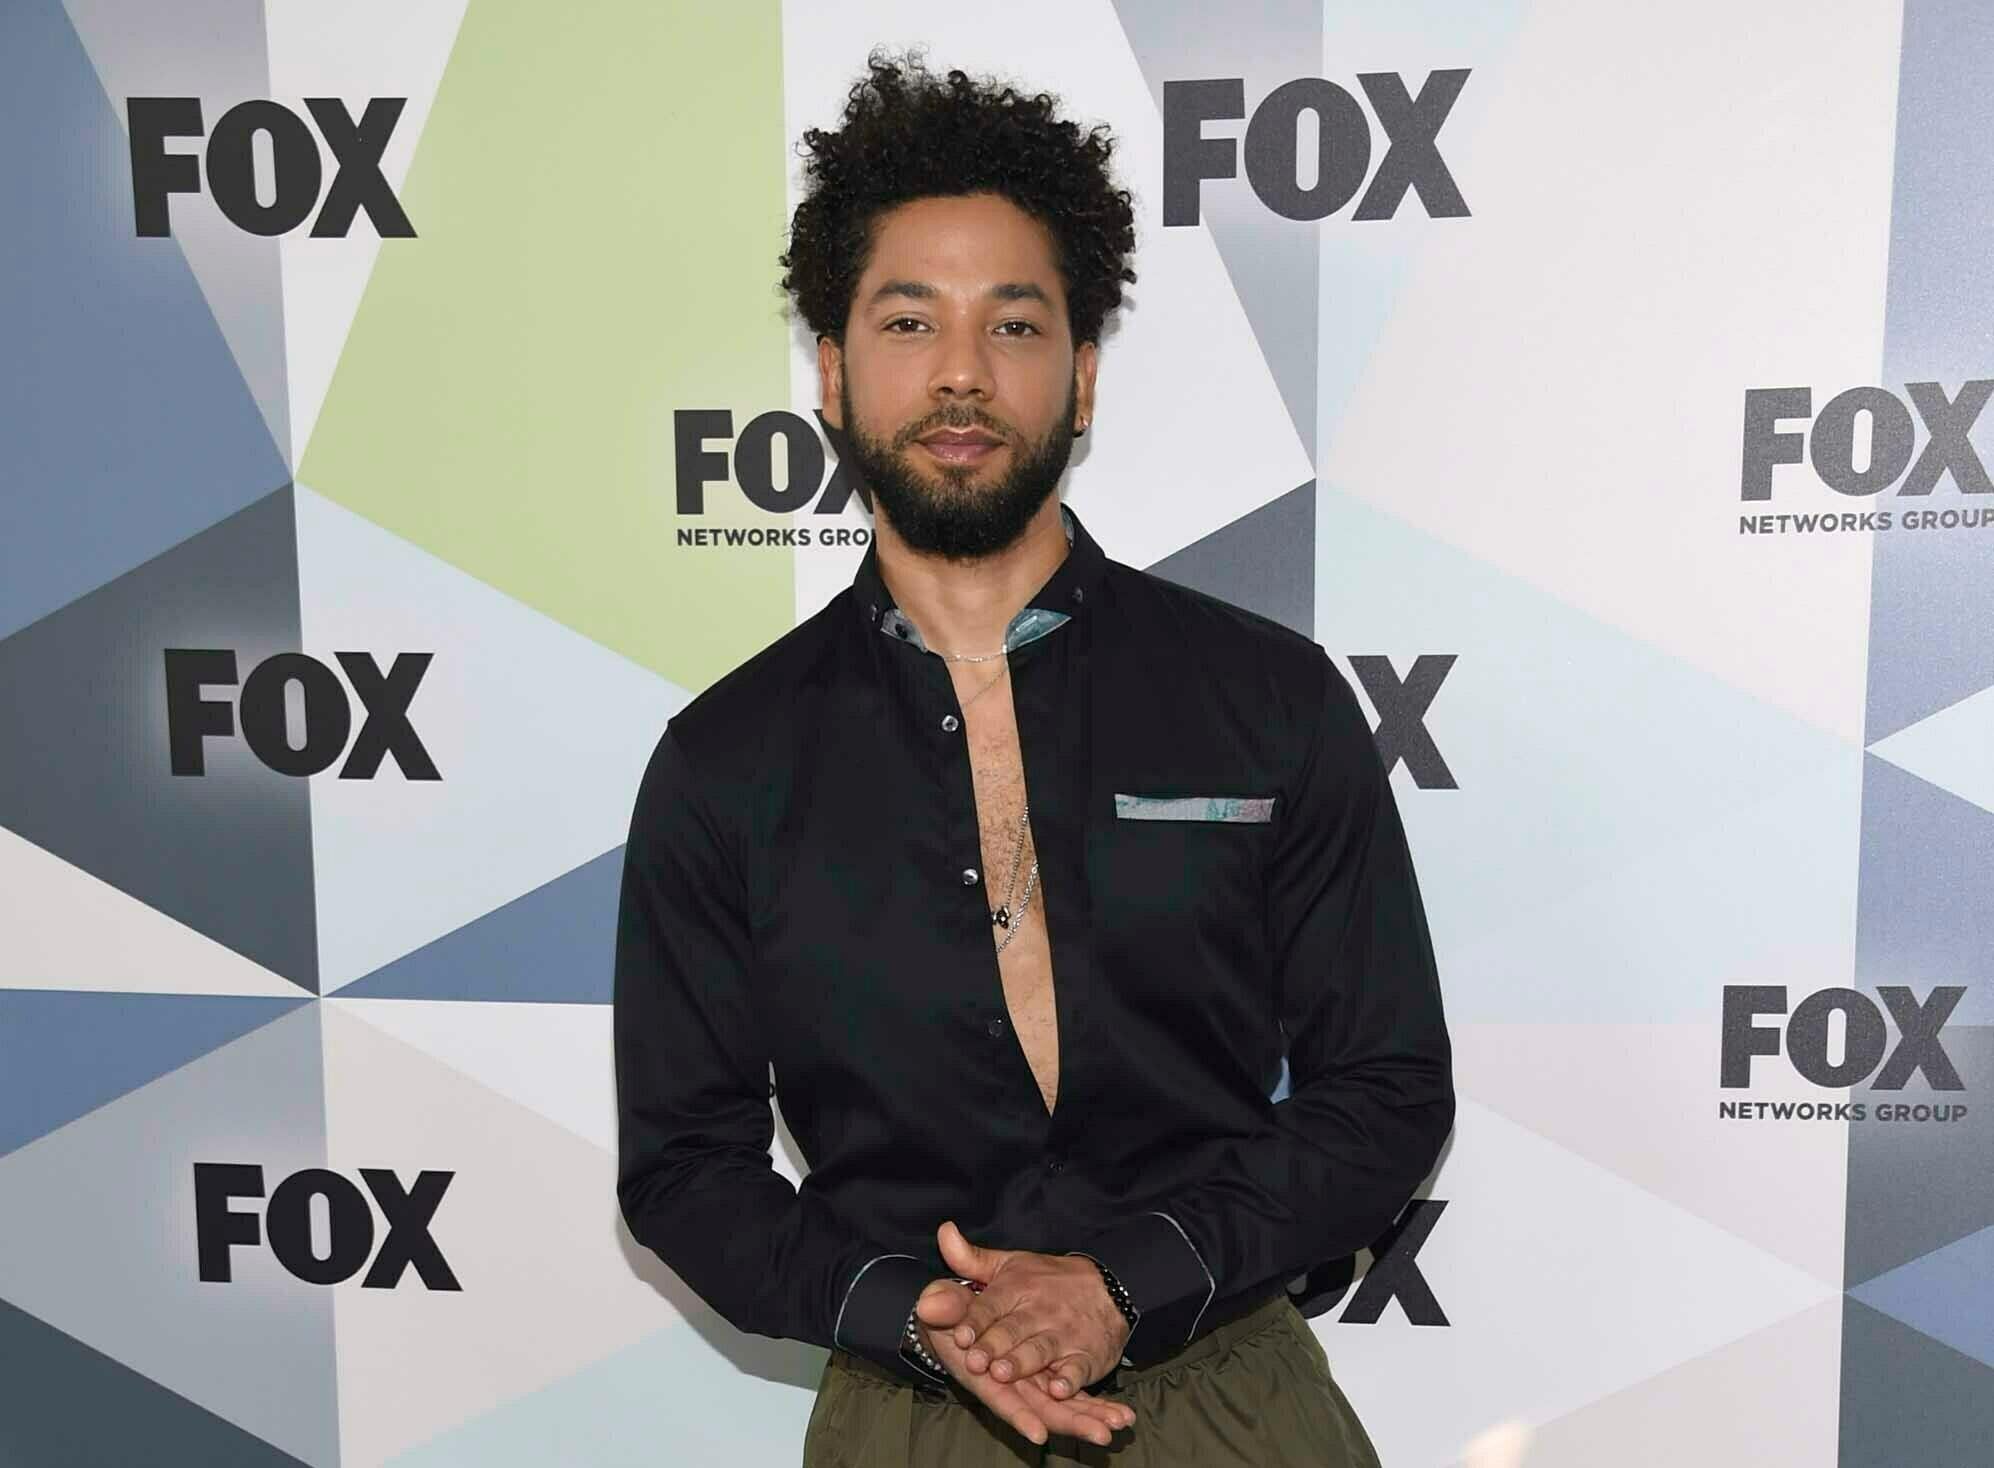 "FILE - In this May 14, 2018 file photo, Jussie Smollett, a cast member in the TV series ""Empire,"" attends the Fox Networks Group 2018 programming presentation afterparty in New York. Smollett is expressing anger over being attacked outside his Chicago apartment last month. Smollett, who plays a musician on the Fox Network's ''Empire'' talked about his ordeal during an interview with ABC News' Robin Roberts to be broadcast Thursday on ""Good Morning America."" He alleges he was the victim of an attack on Jan. 29 by two masked men who shouted racial and homophobic slurs at him. (Photo by Evan Agostini/Invision/AP, File)"